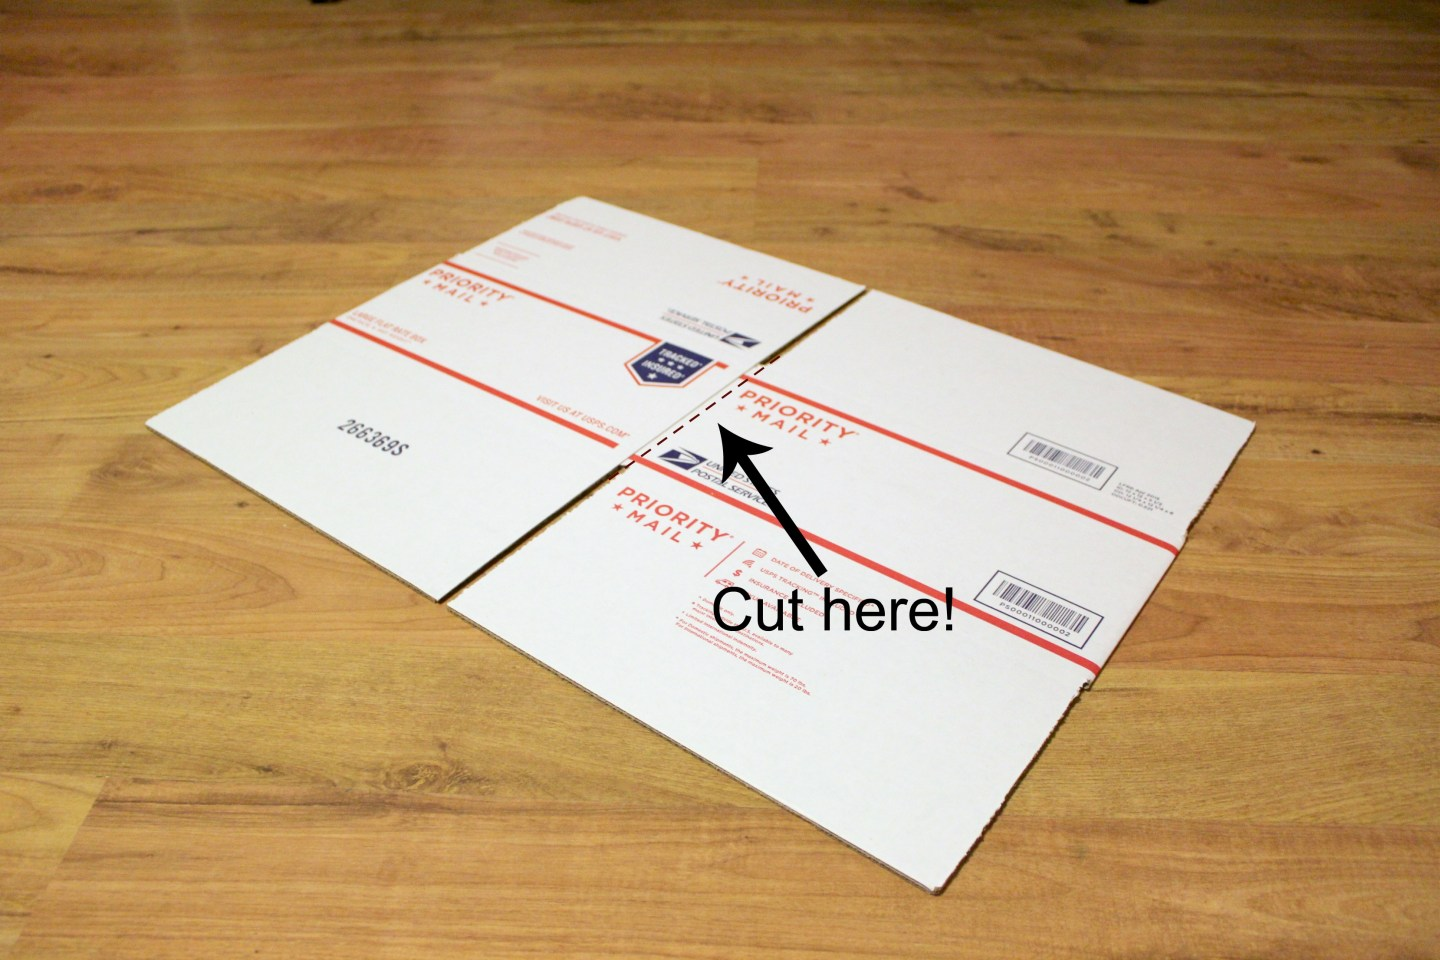 How to wrap inside of box for care package.